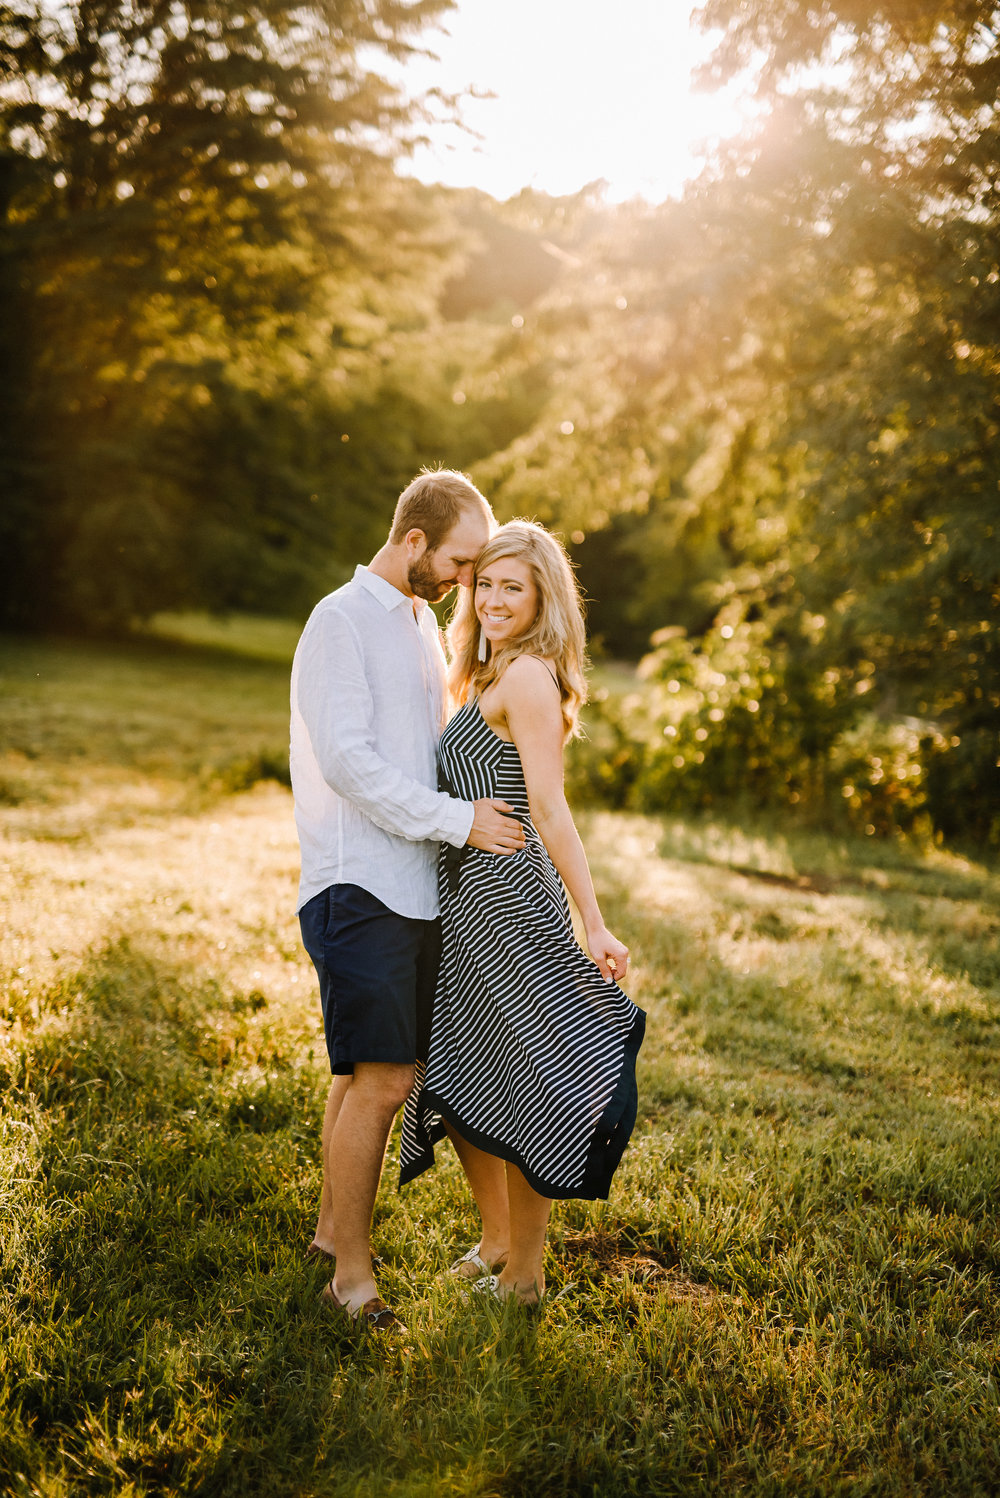 Meredith & Michael_Broad Ave_Shelby Farms_Ashley Benham Photography-112.jpg